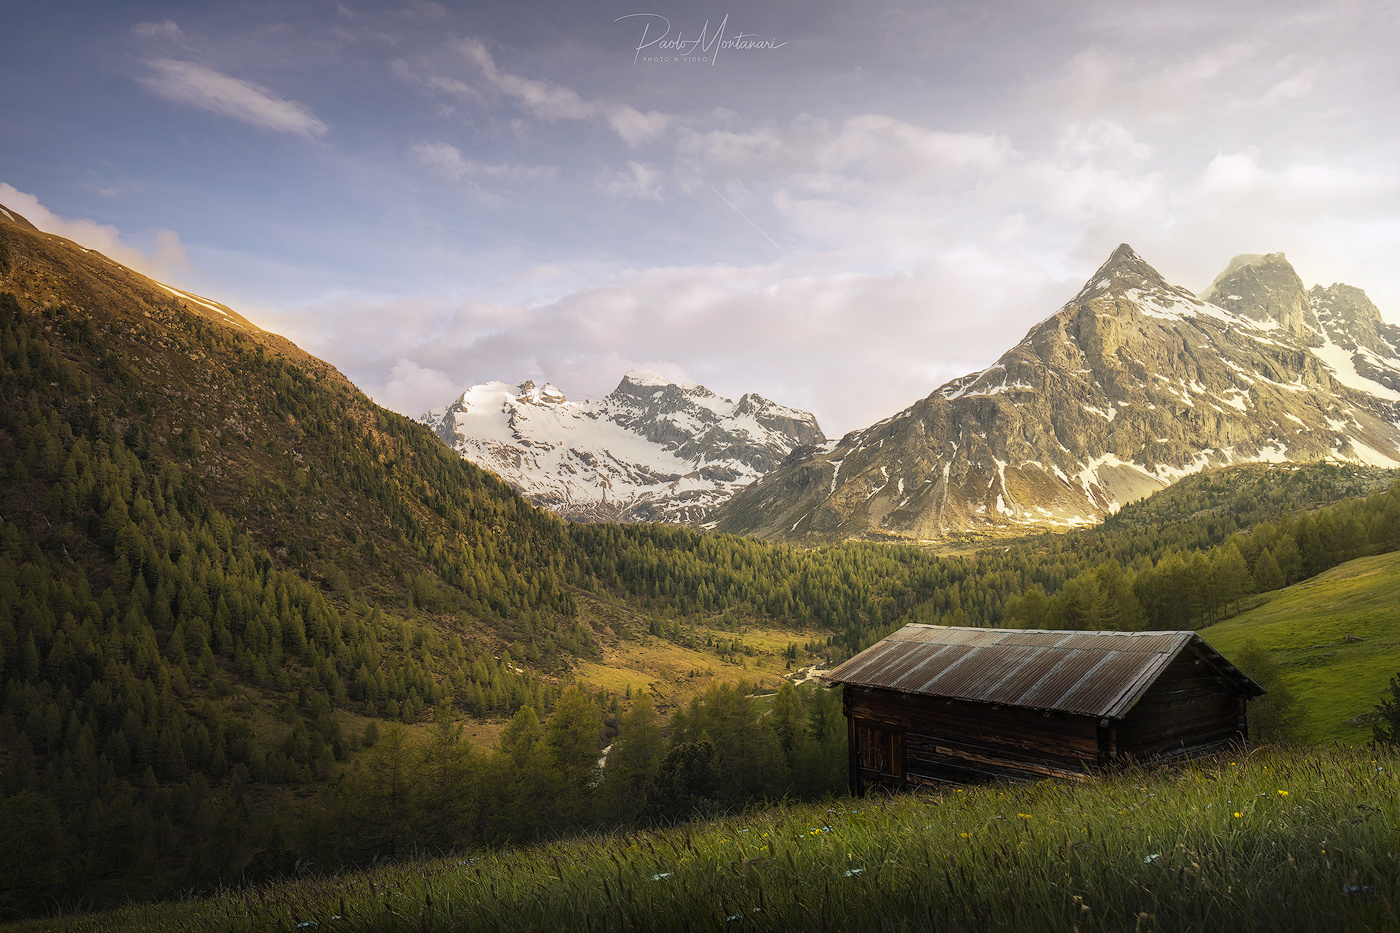 Spring Is Coming by Paolo Montanari